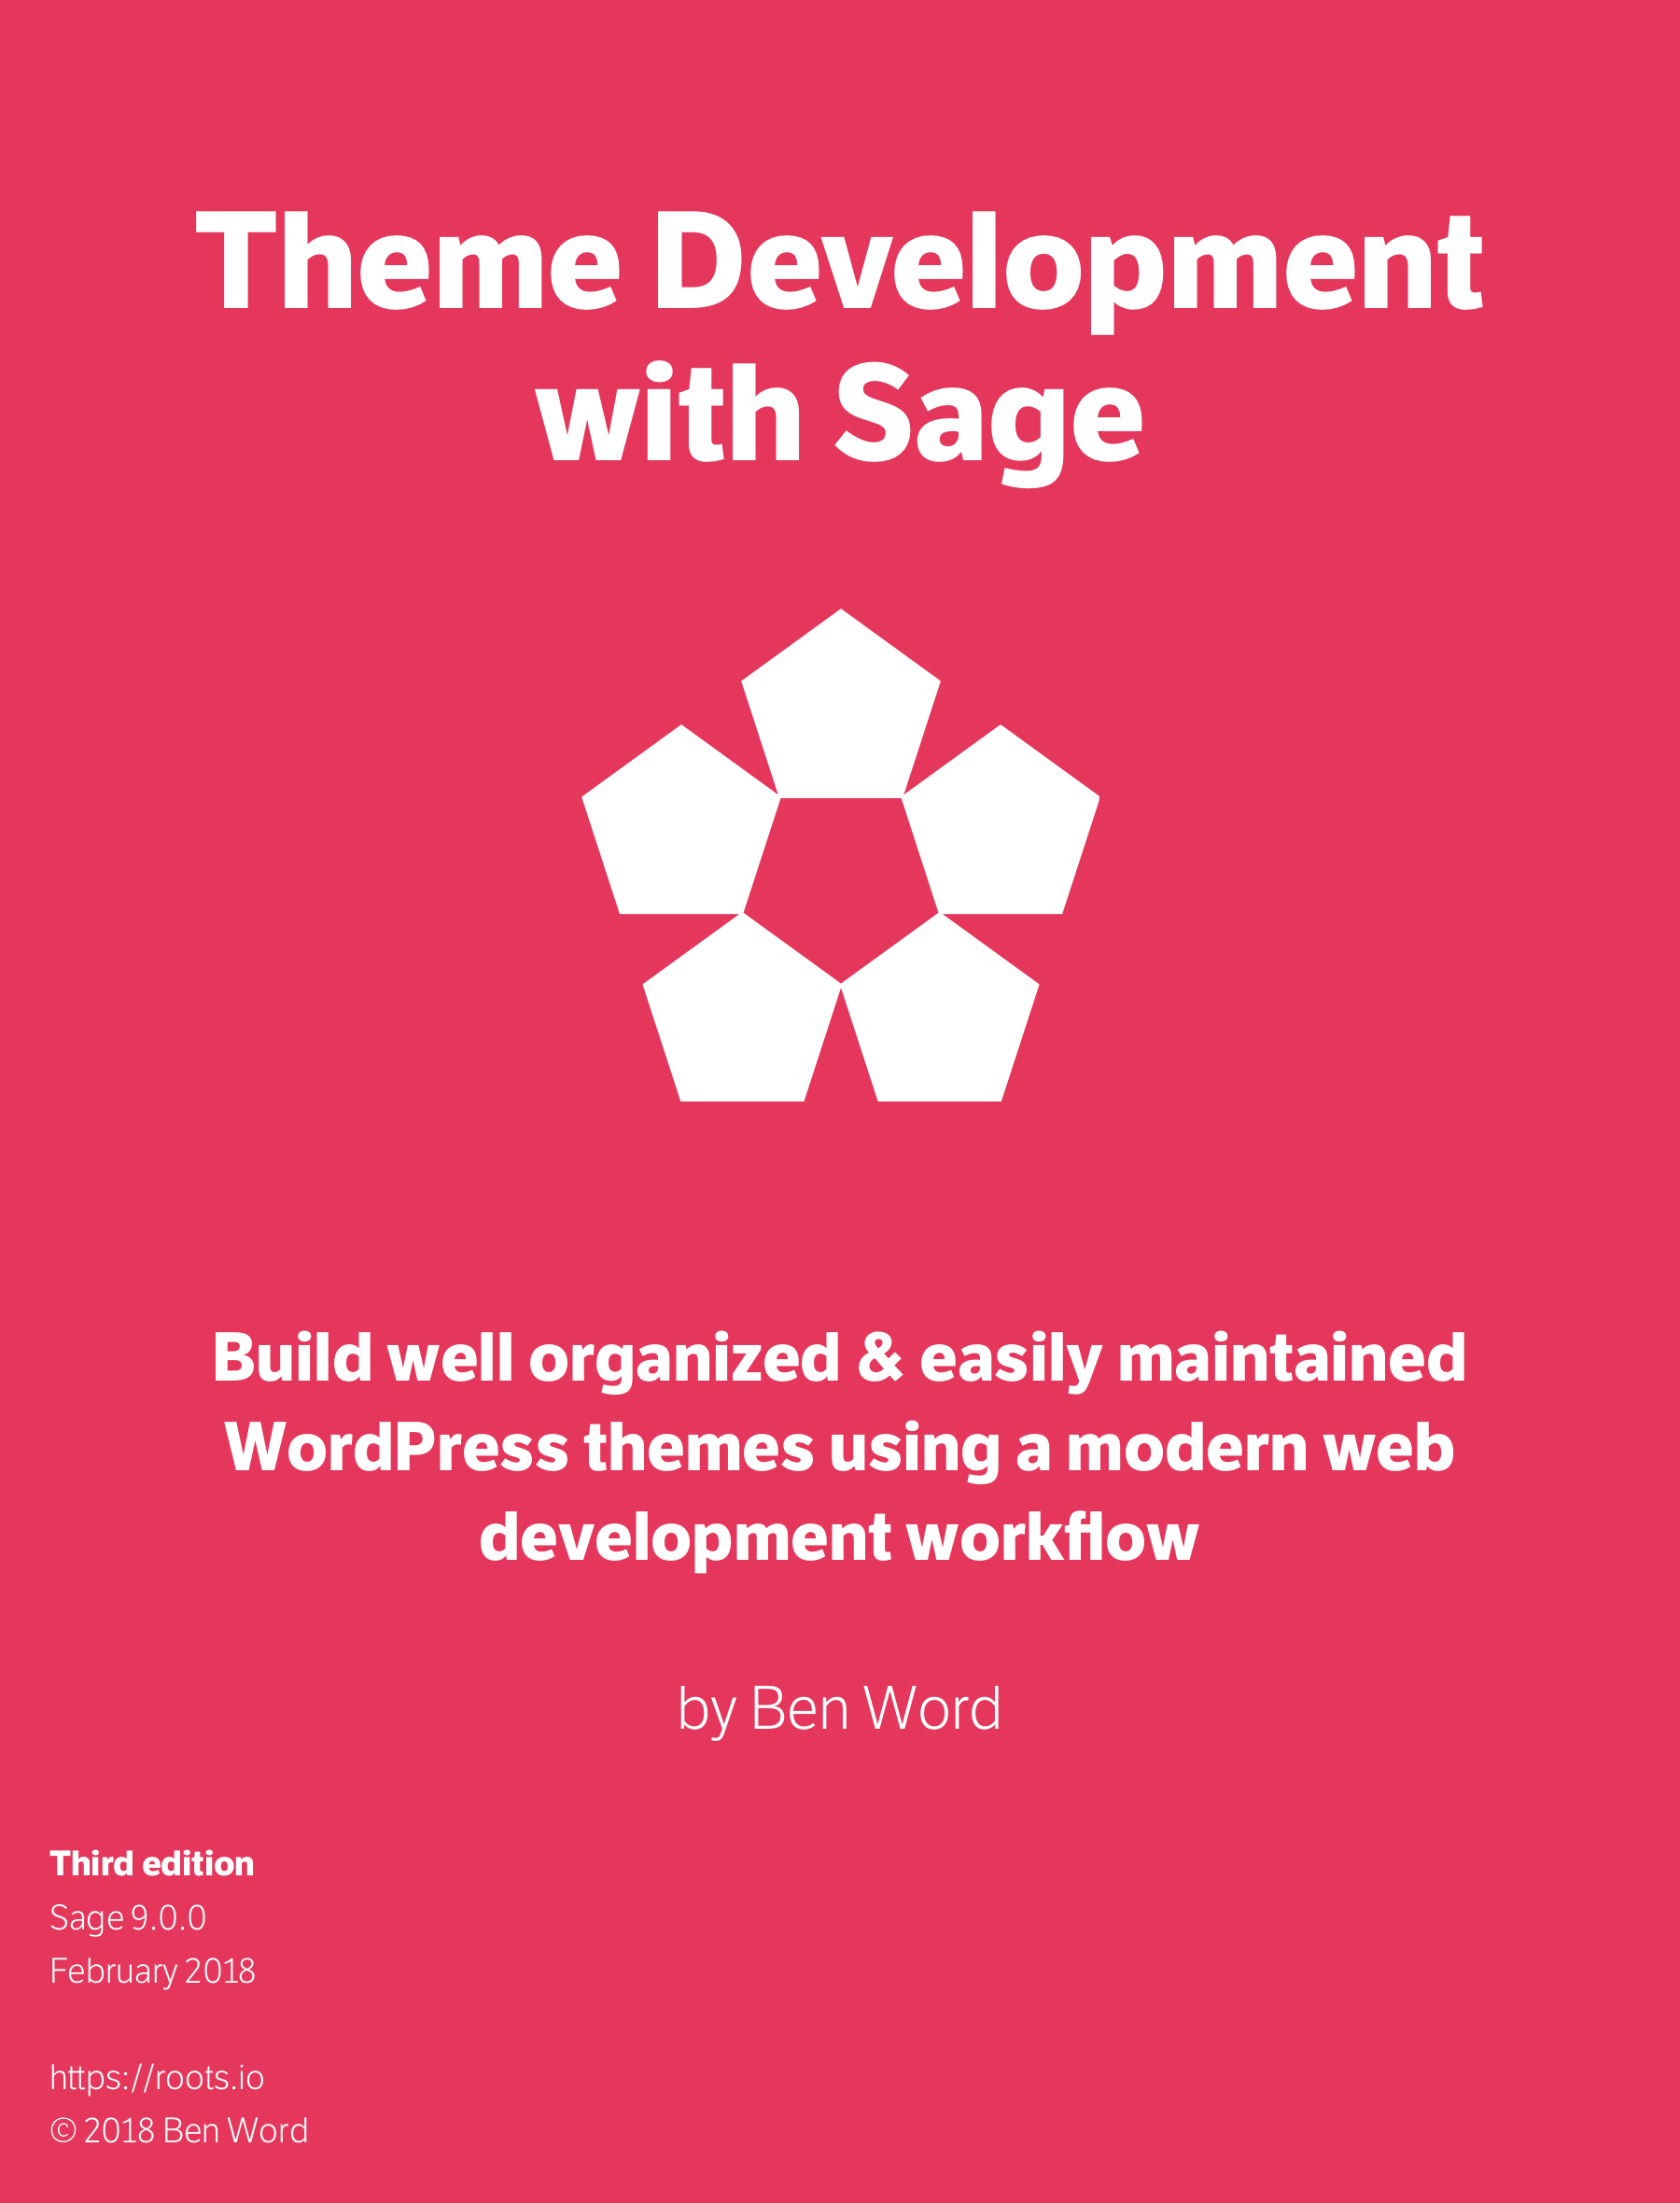 Theme Development and Building | Sage Documentation | Roots